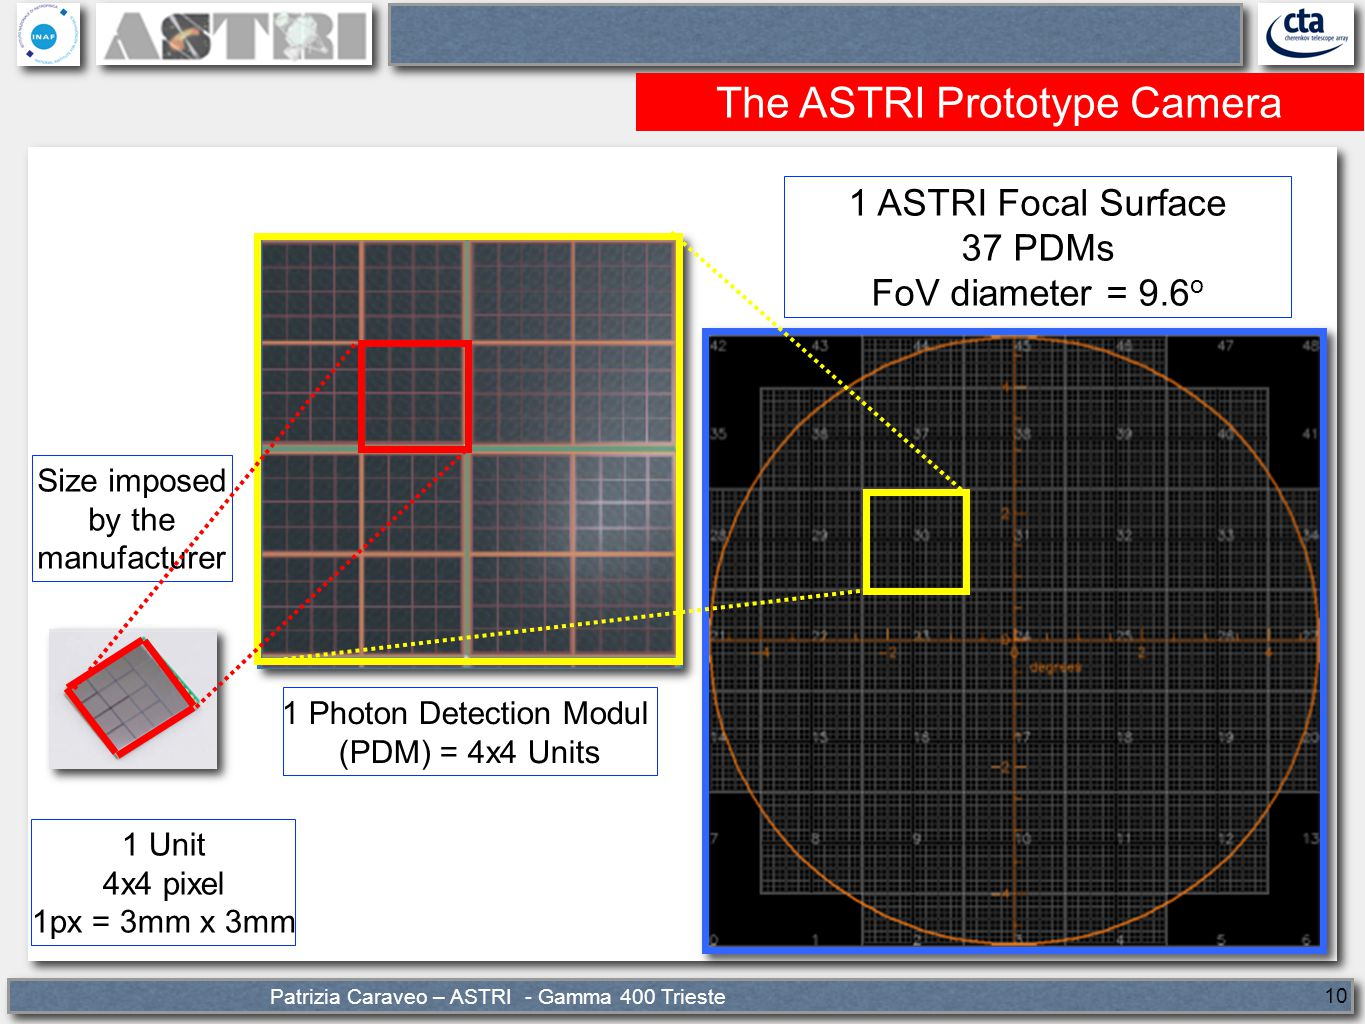 Patrizia Caraveo – ASTRI - Gamma 400 Trieste 10 The ASTRI Prototype Camera 1 Unit 4x4 pixel 1px = 3mm x 3mm 1 Photon Detection Modul (PDM) = 4x4 Units